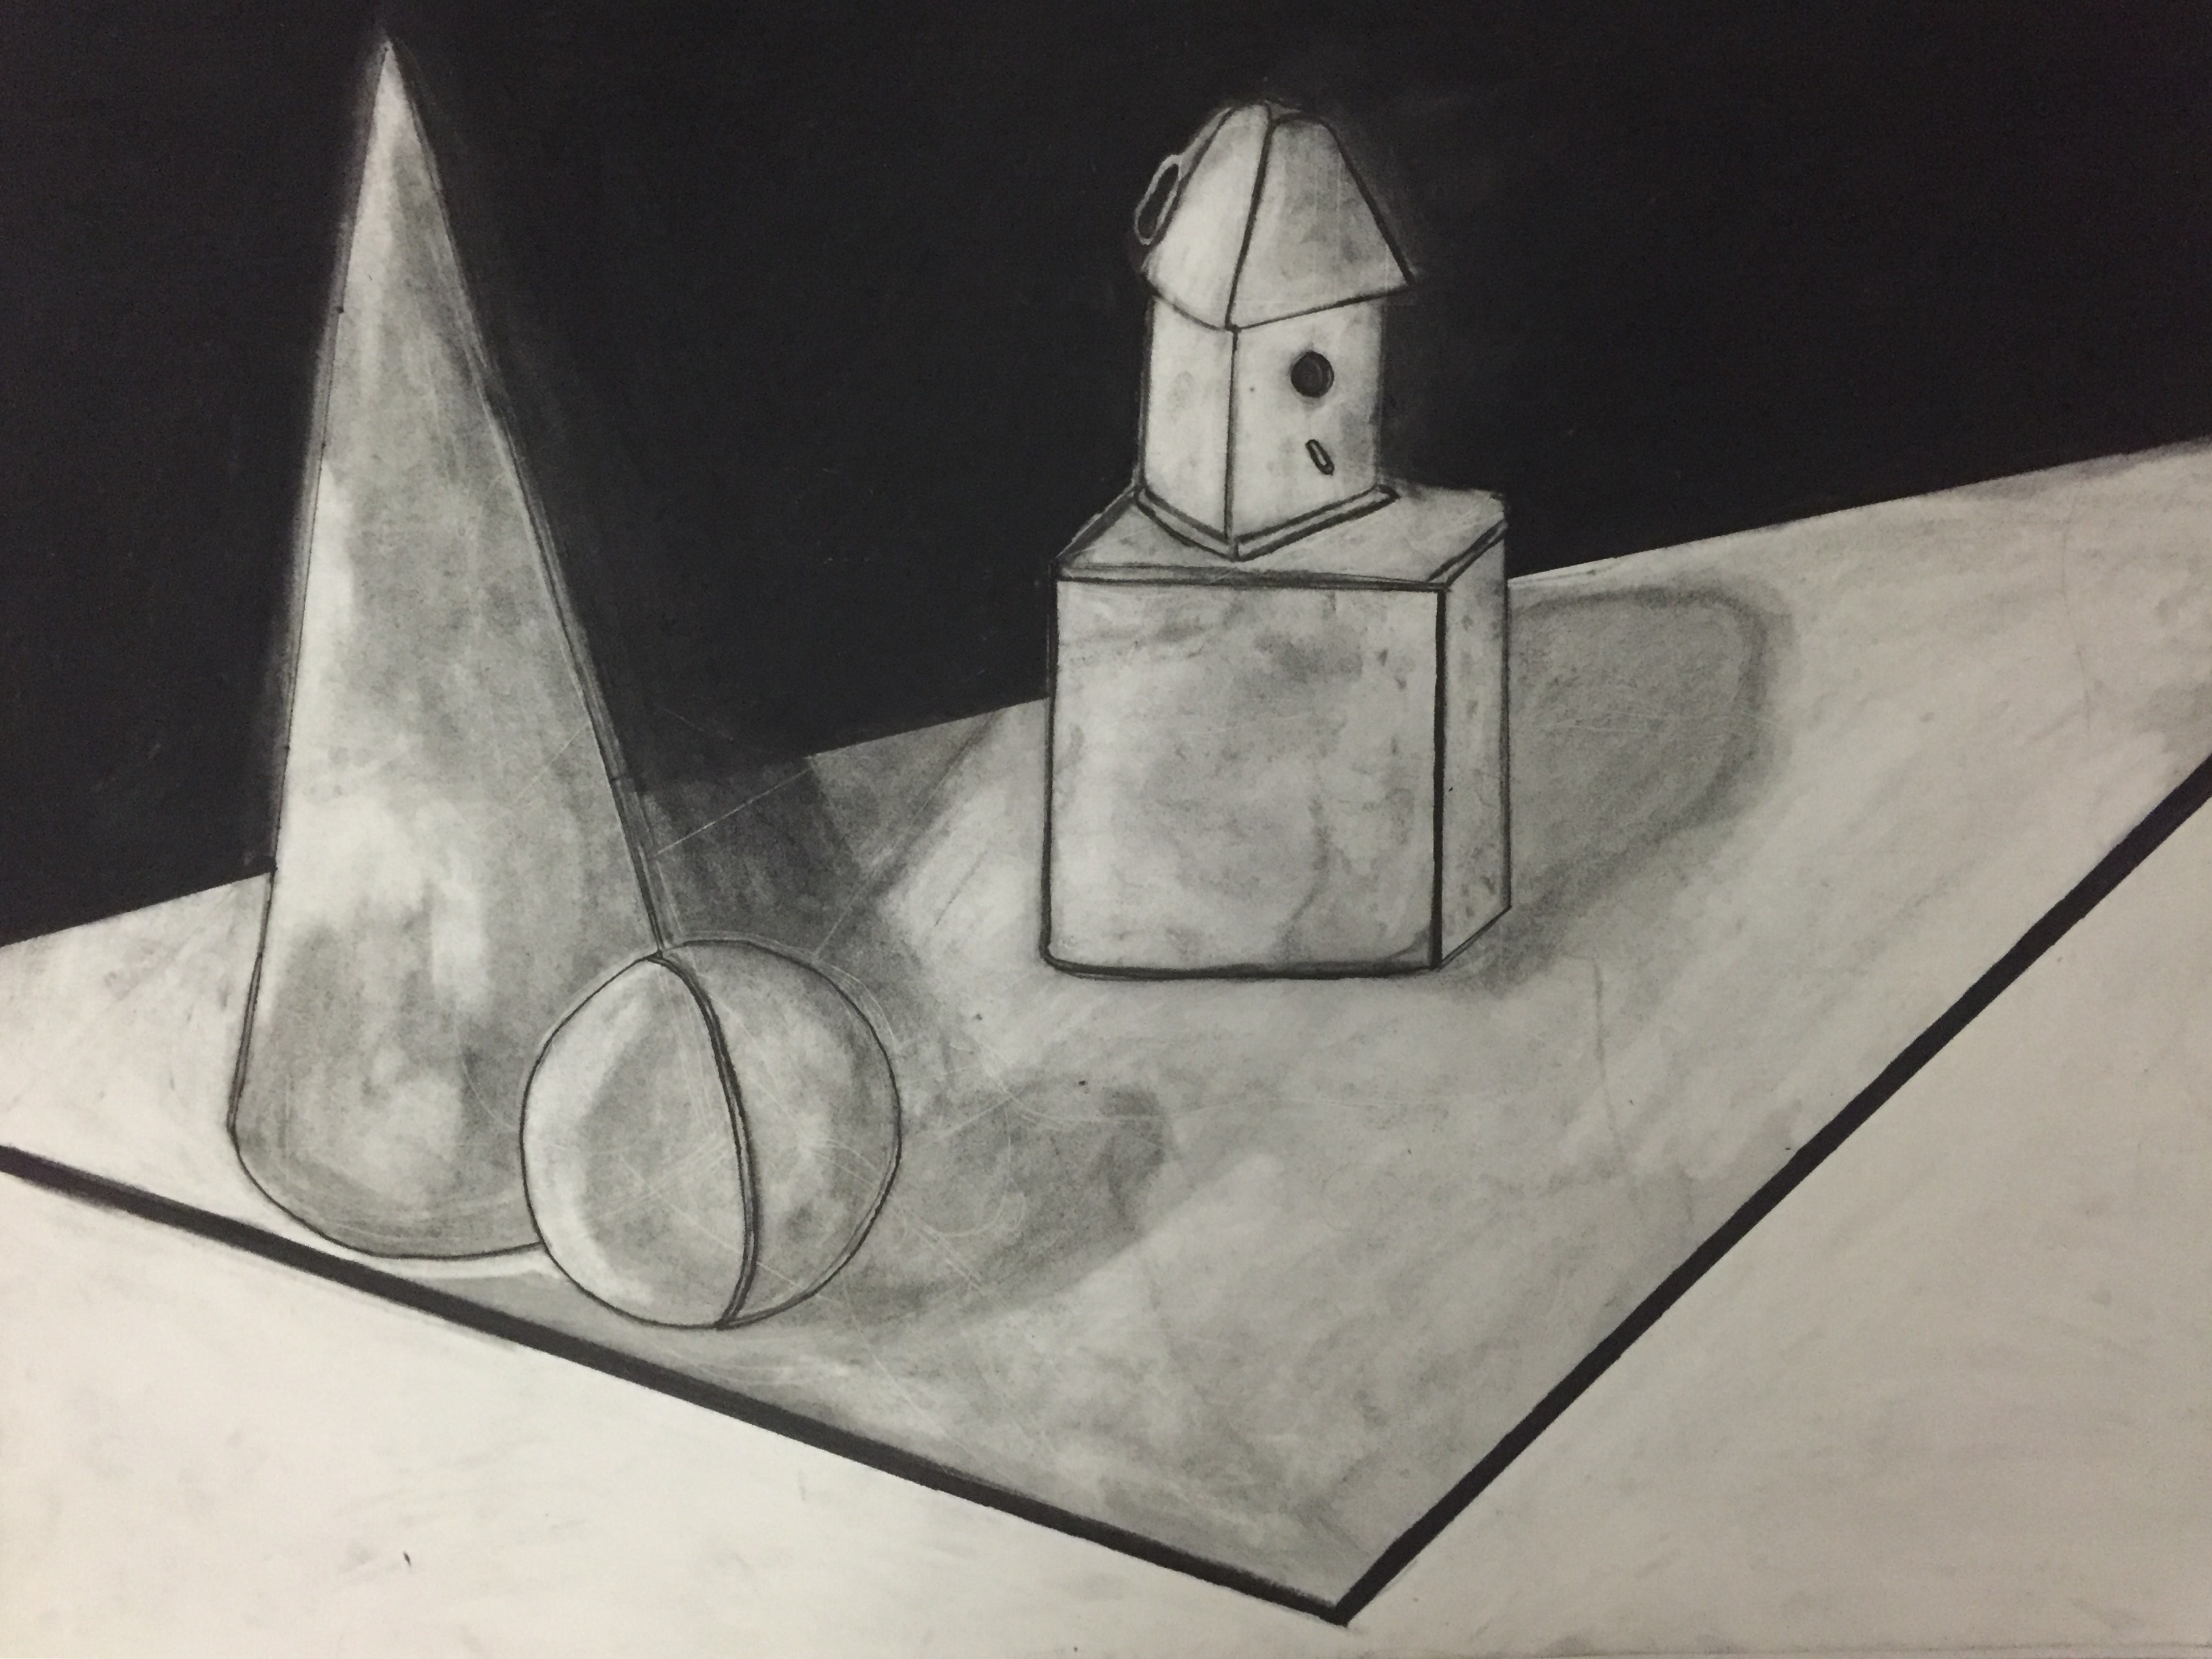 Geometrical Studies in Charcoal: Part II